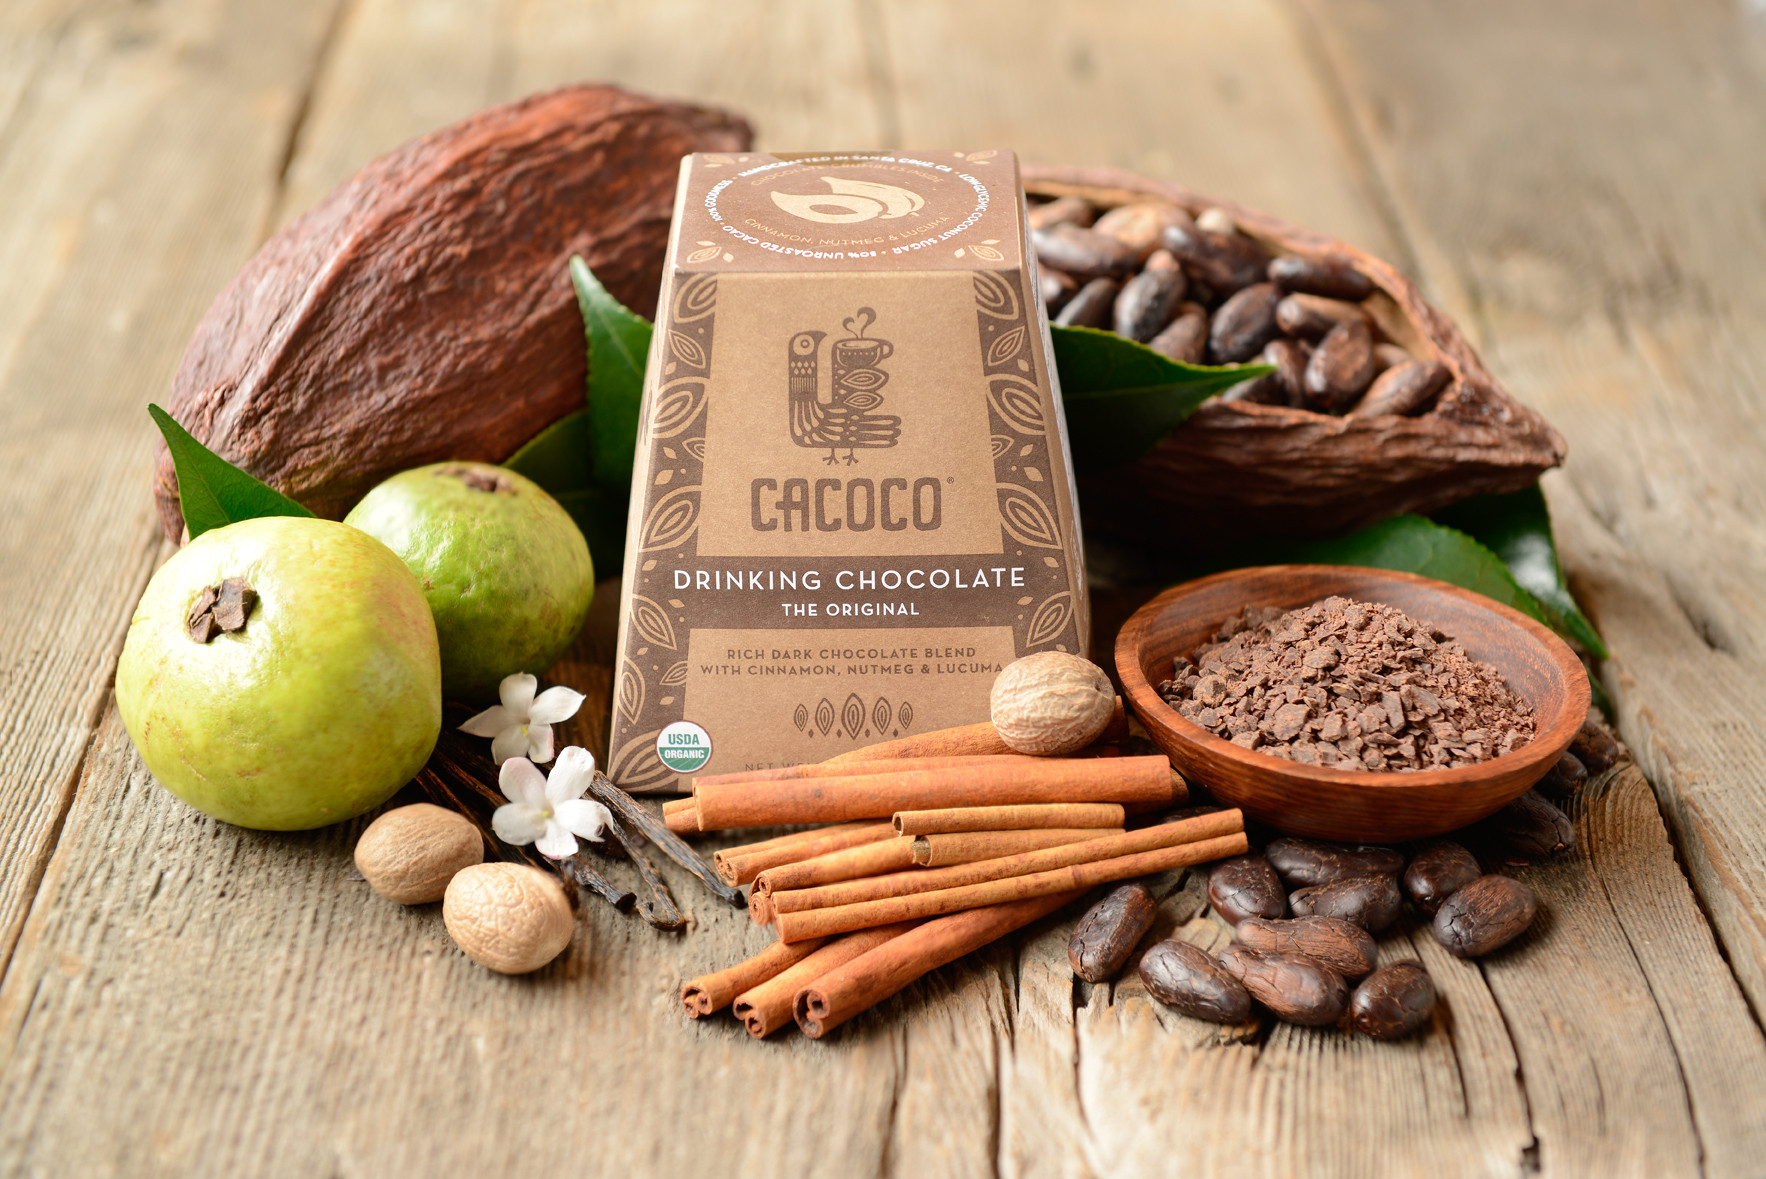 Edible Innovations: Cacoco Is Sustainable Drinking Chocolate with Biodegradable Packaging